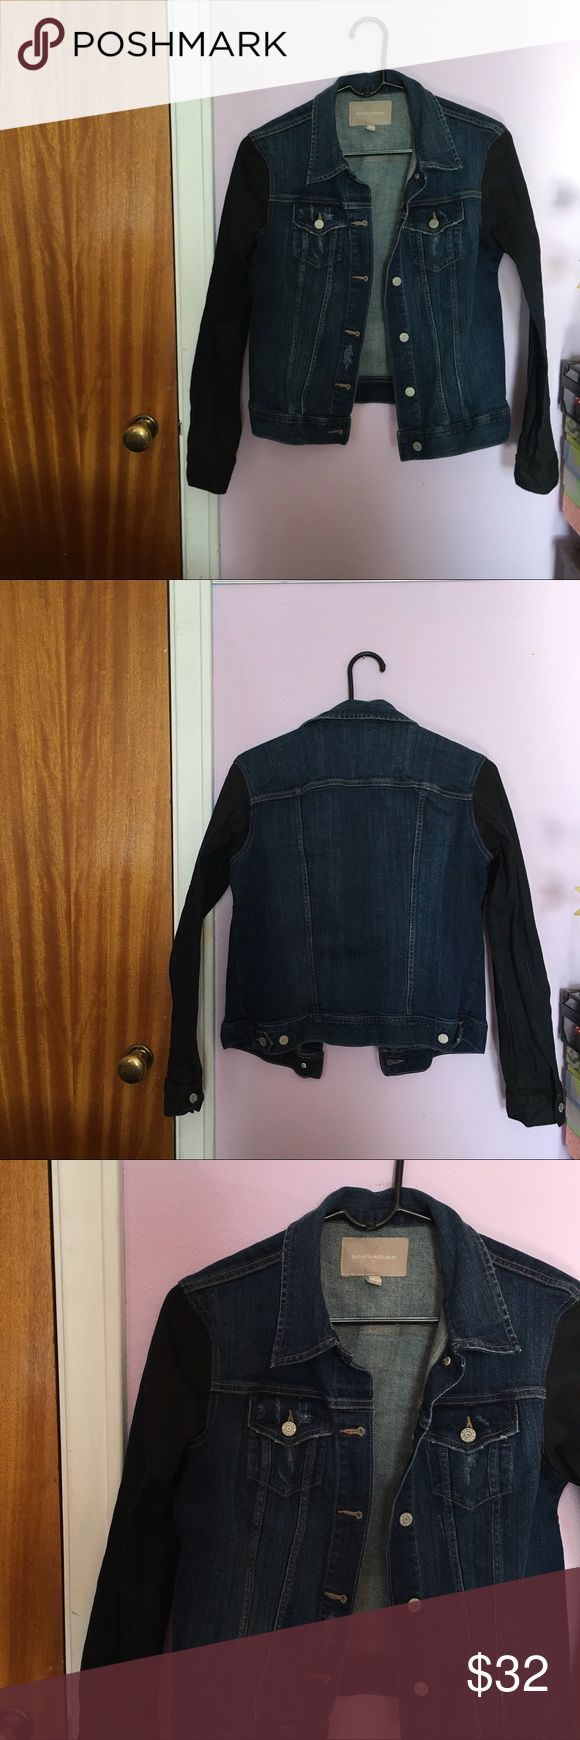 Denim Jacket   Banana Republic Chic denim jacket from Banana Republic. Features a dark denim wash with black denim sleeves. Absolutely amazing and perfect for the fall and winter. 😍  Size: M.   In excellent used condition! Banana Republic Jackets & Coats